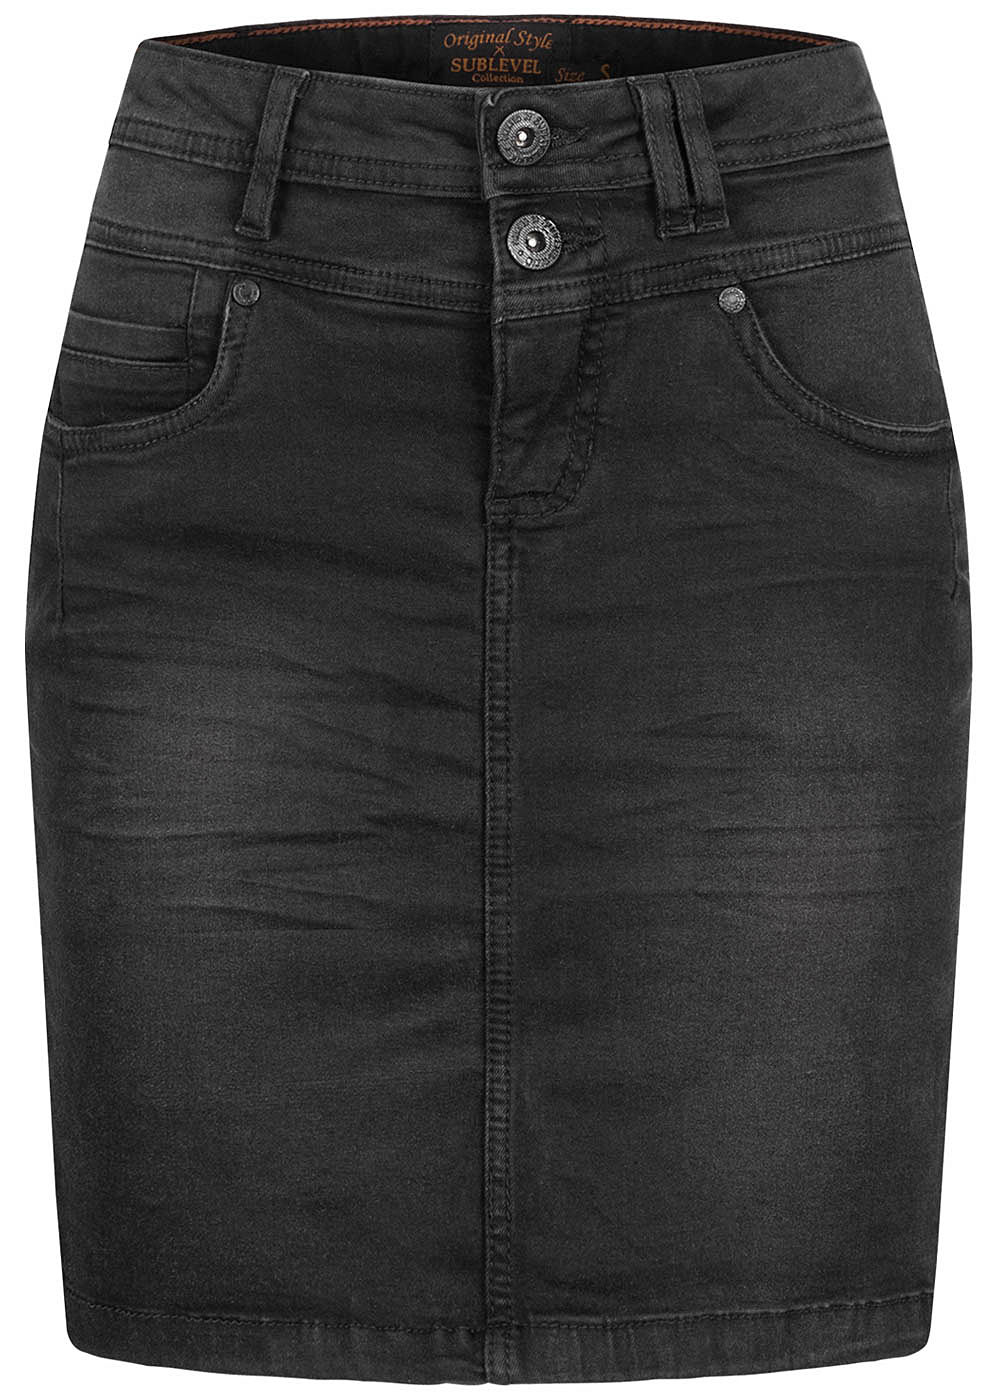 Sublevel Damen Mini Jeans Rock 5-Pockets 2er Knopfleiste schwarz denim - Art.-Nr.: 20094168